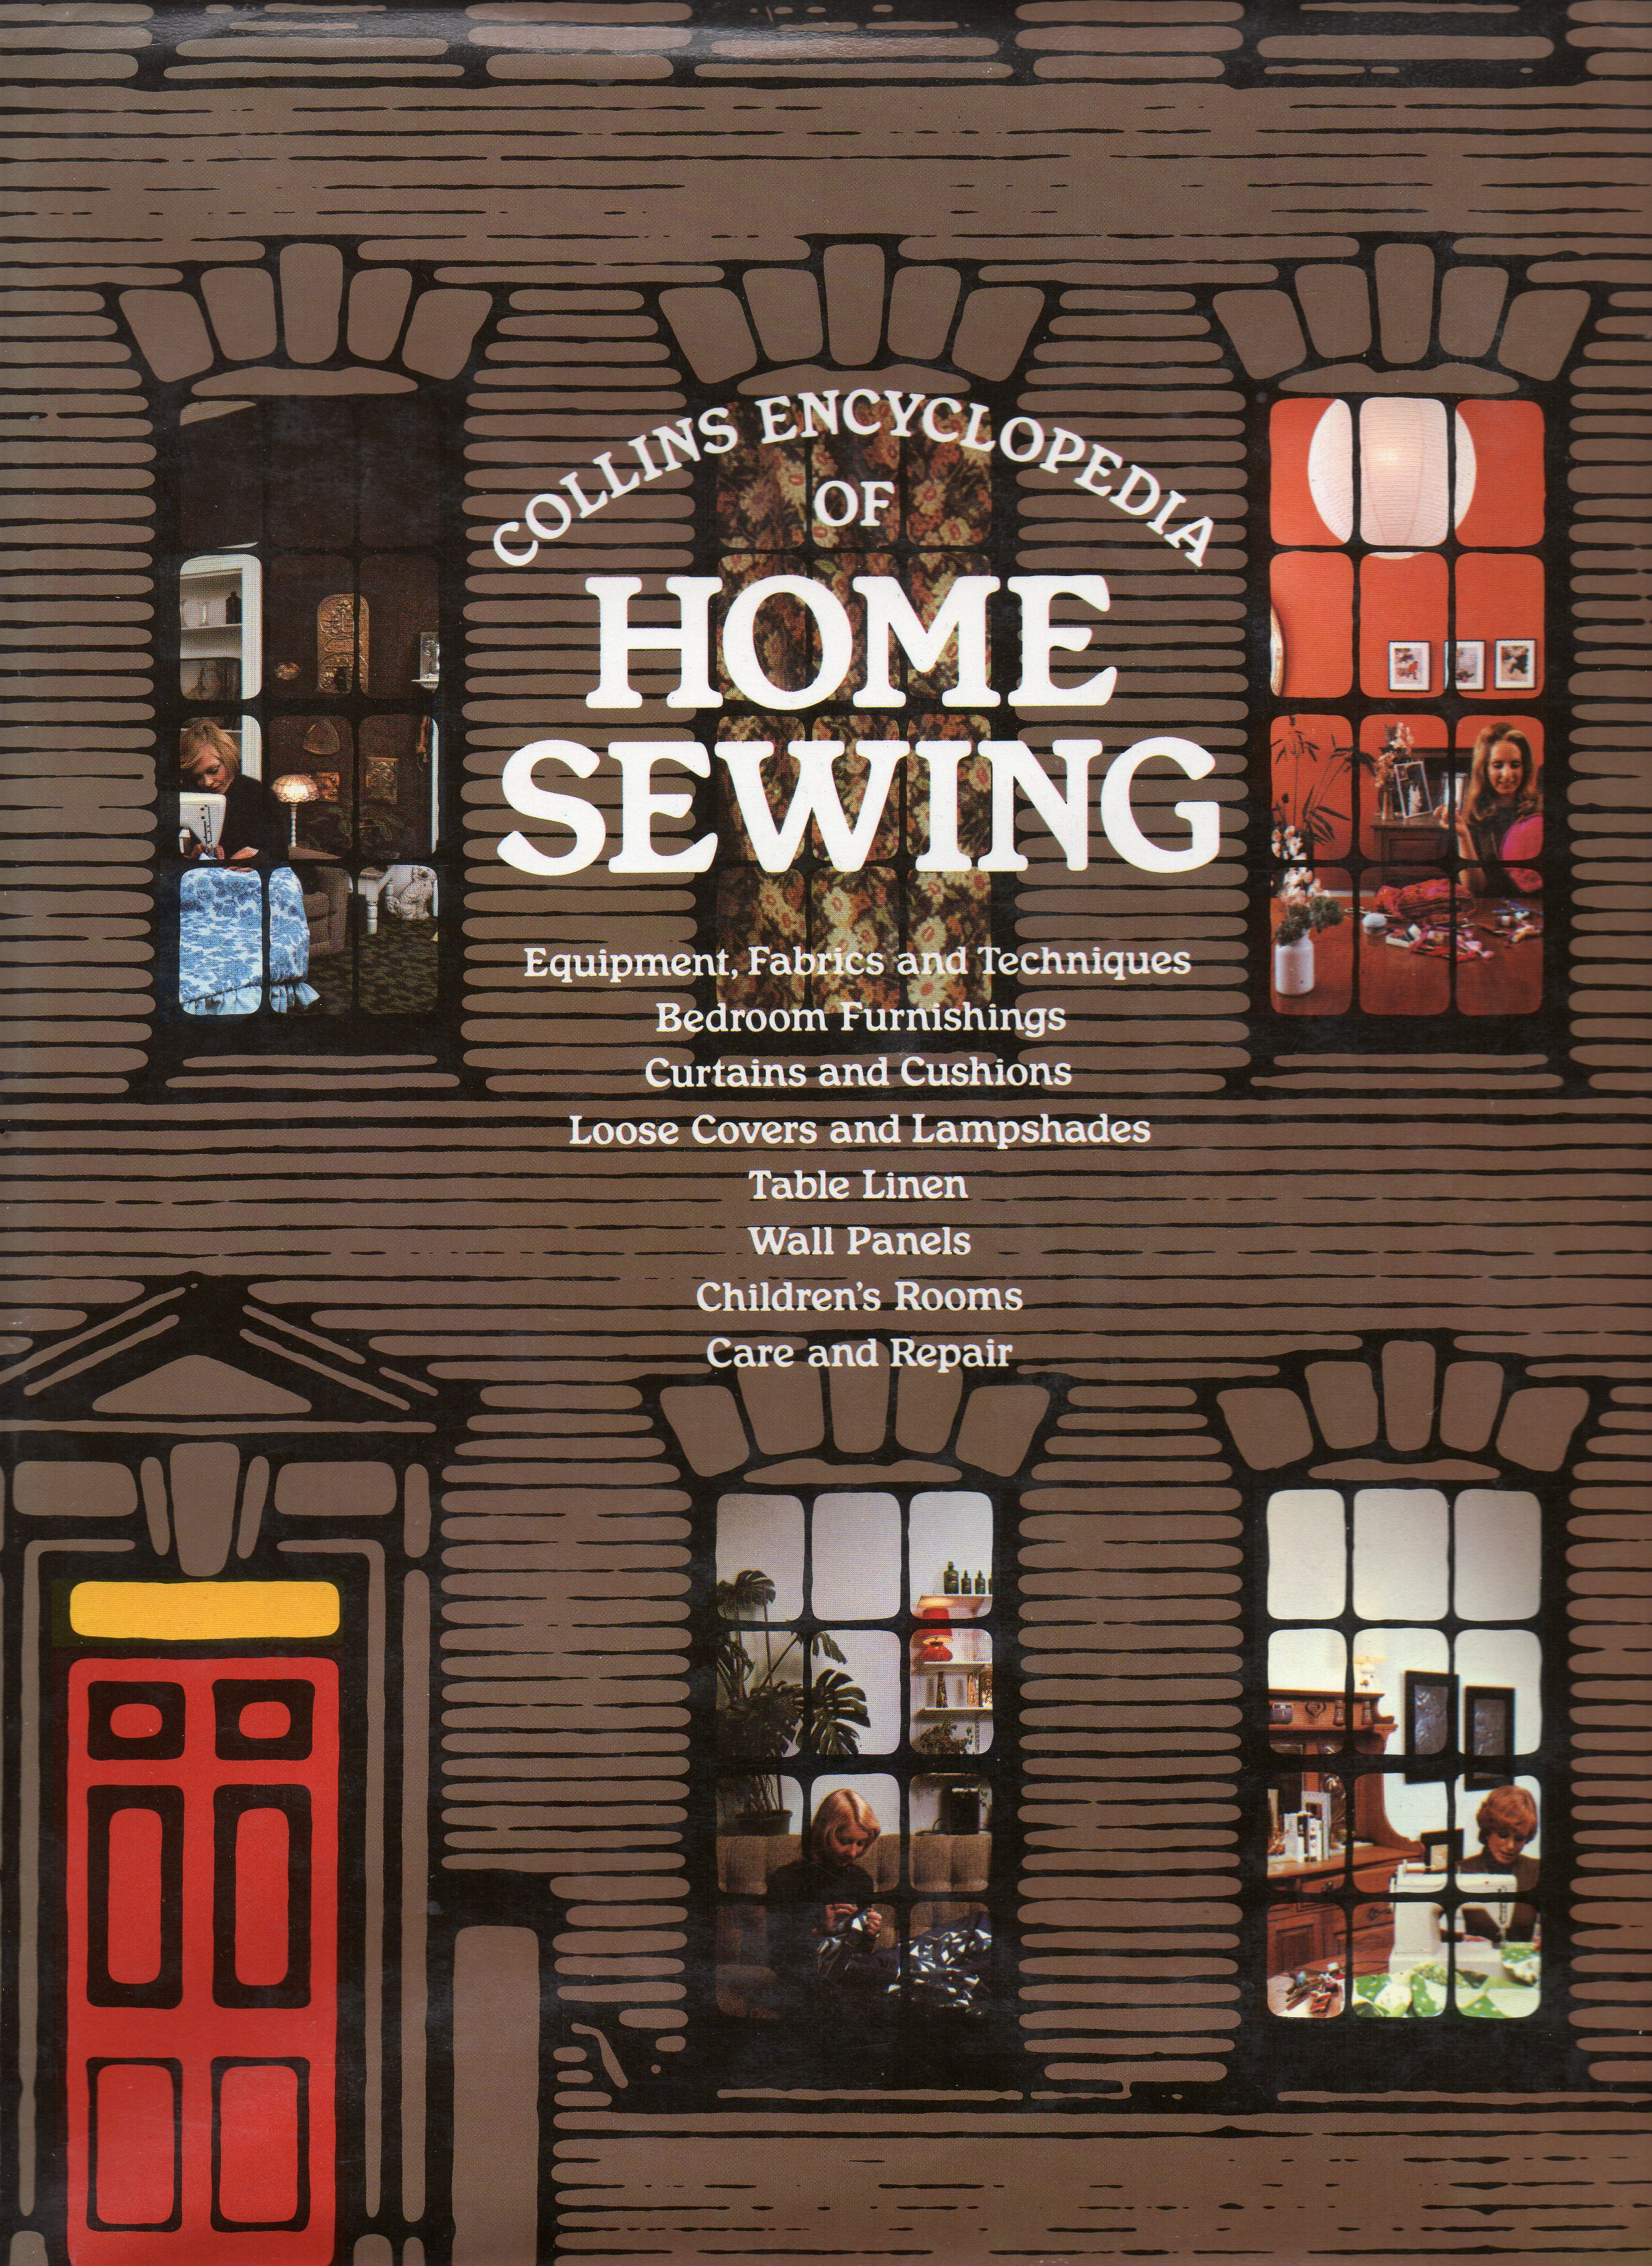 home sewing cover